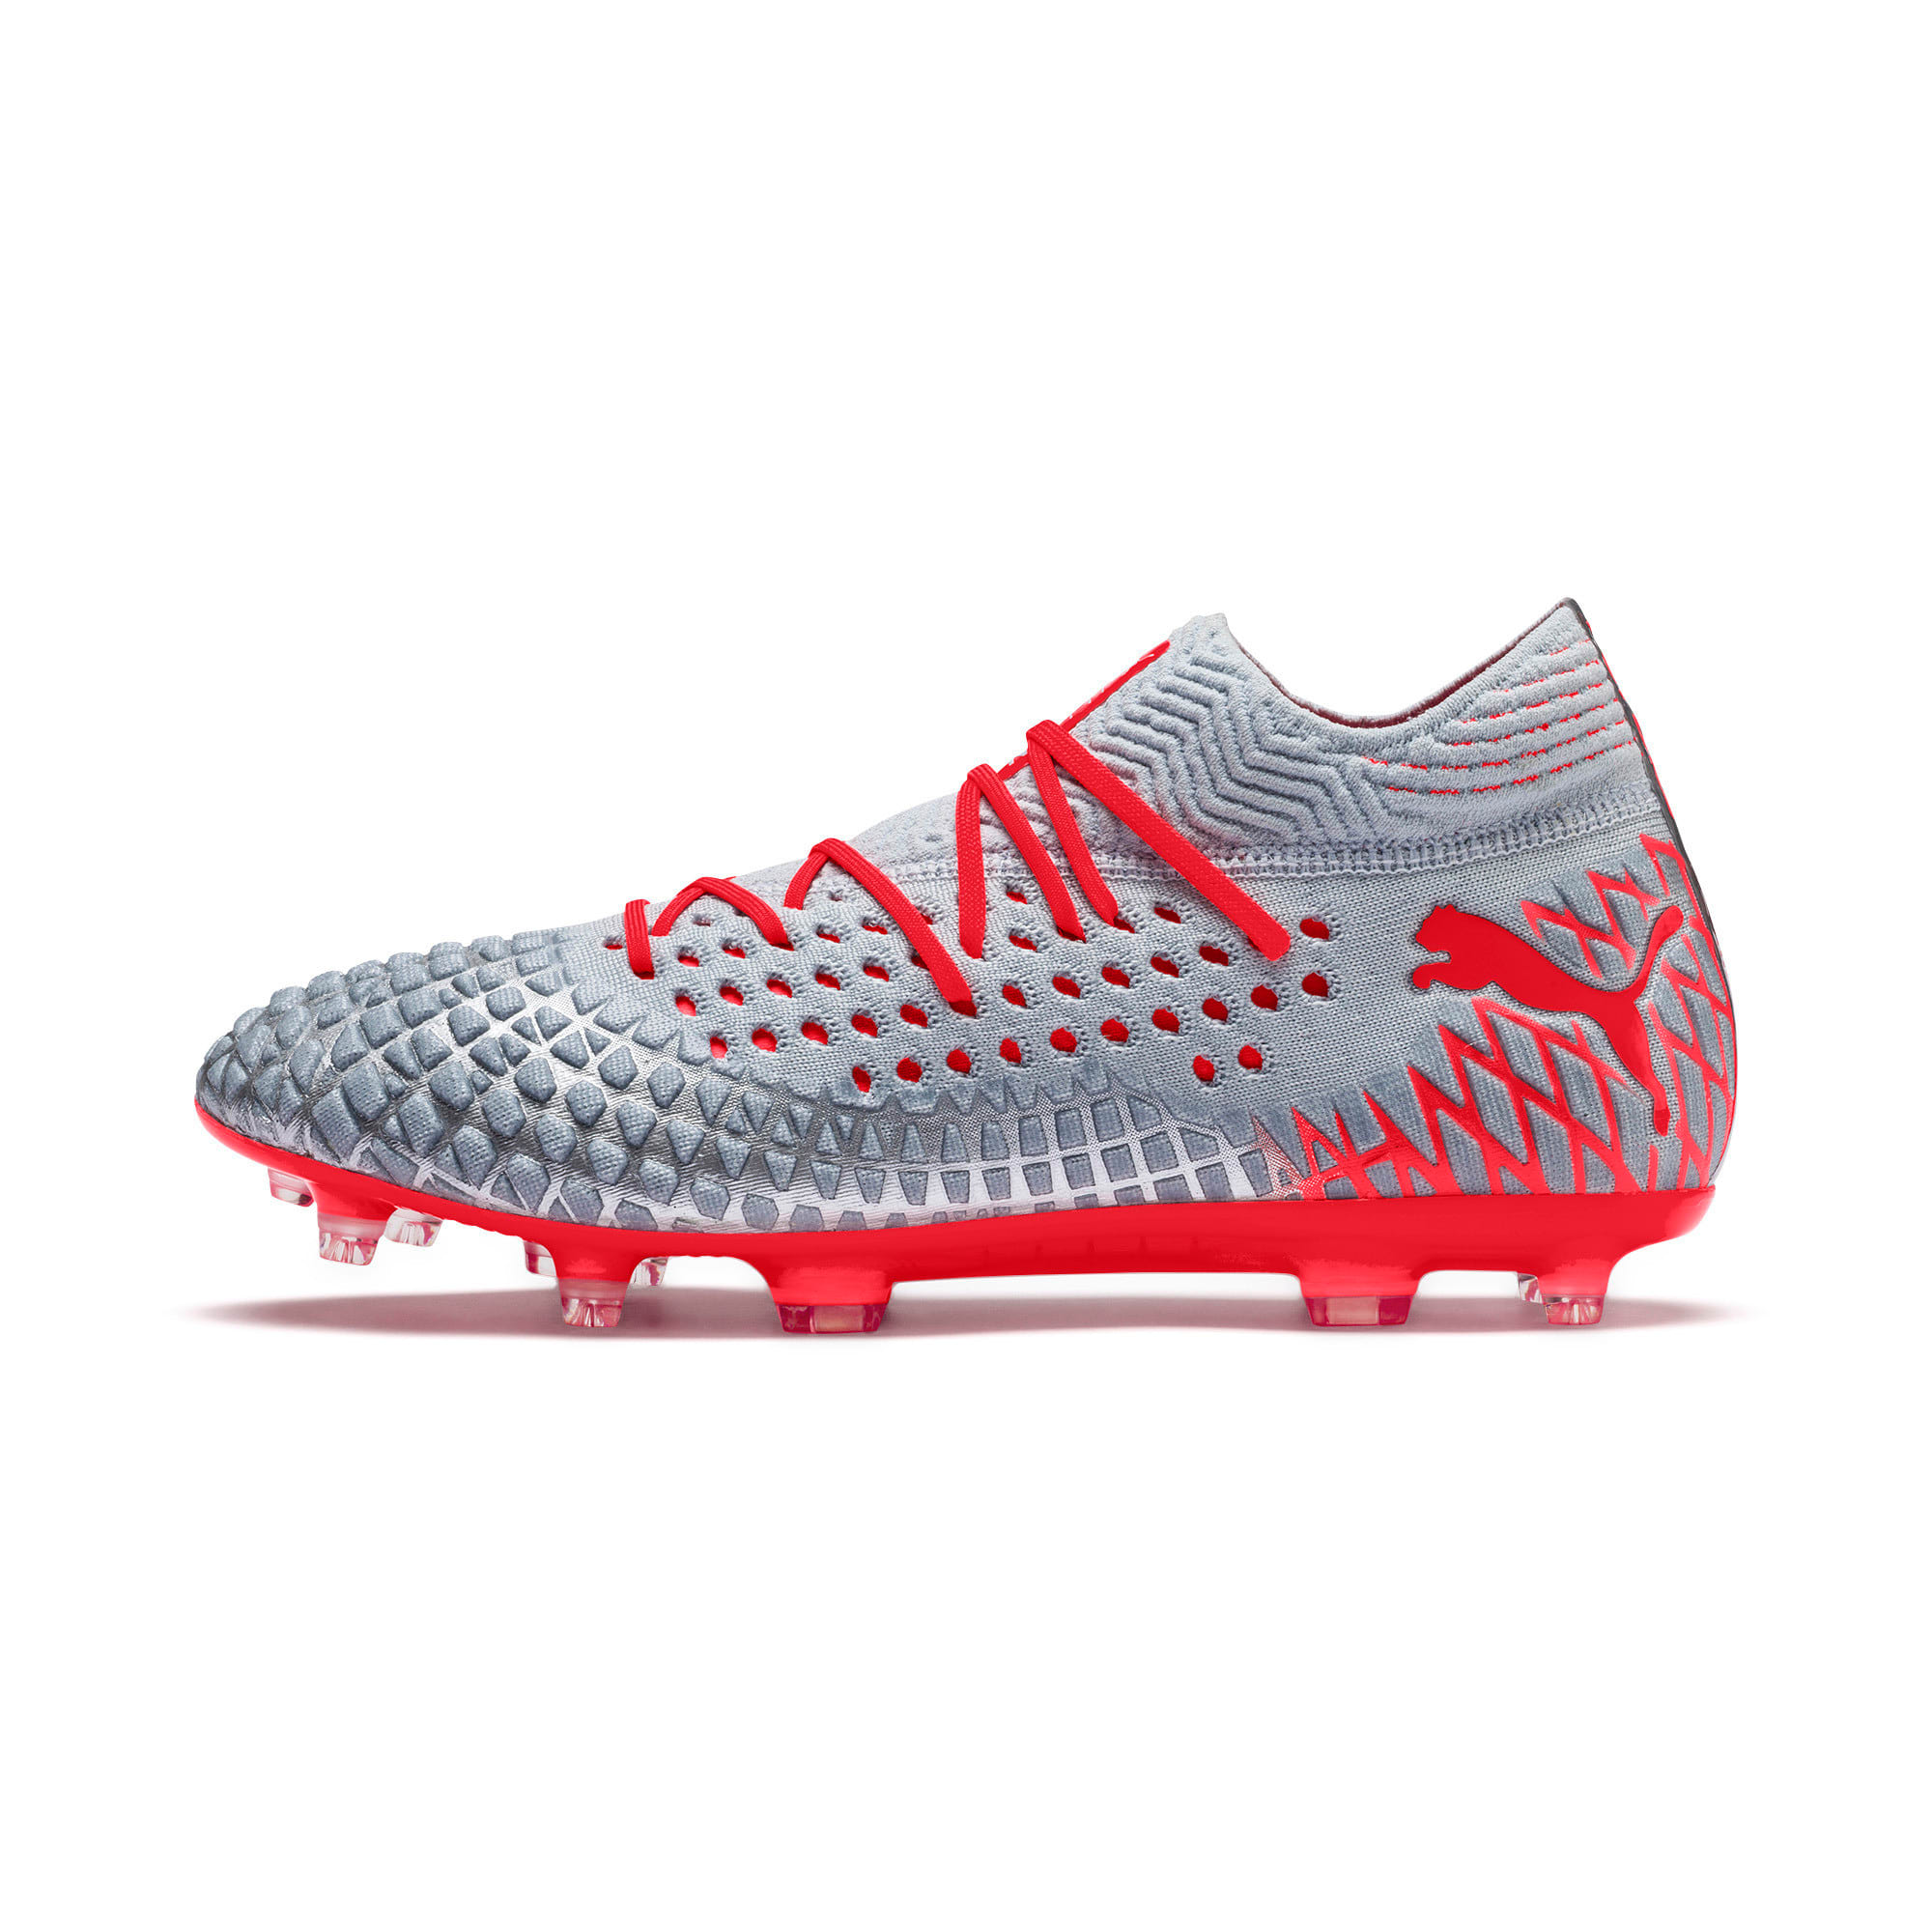 Thumbnail 1 of FUTURE 4.1 NETFIT FG/AG Men's Football Boots, Blue-Nrgy Red-High Risk Red, medium-IND